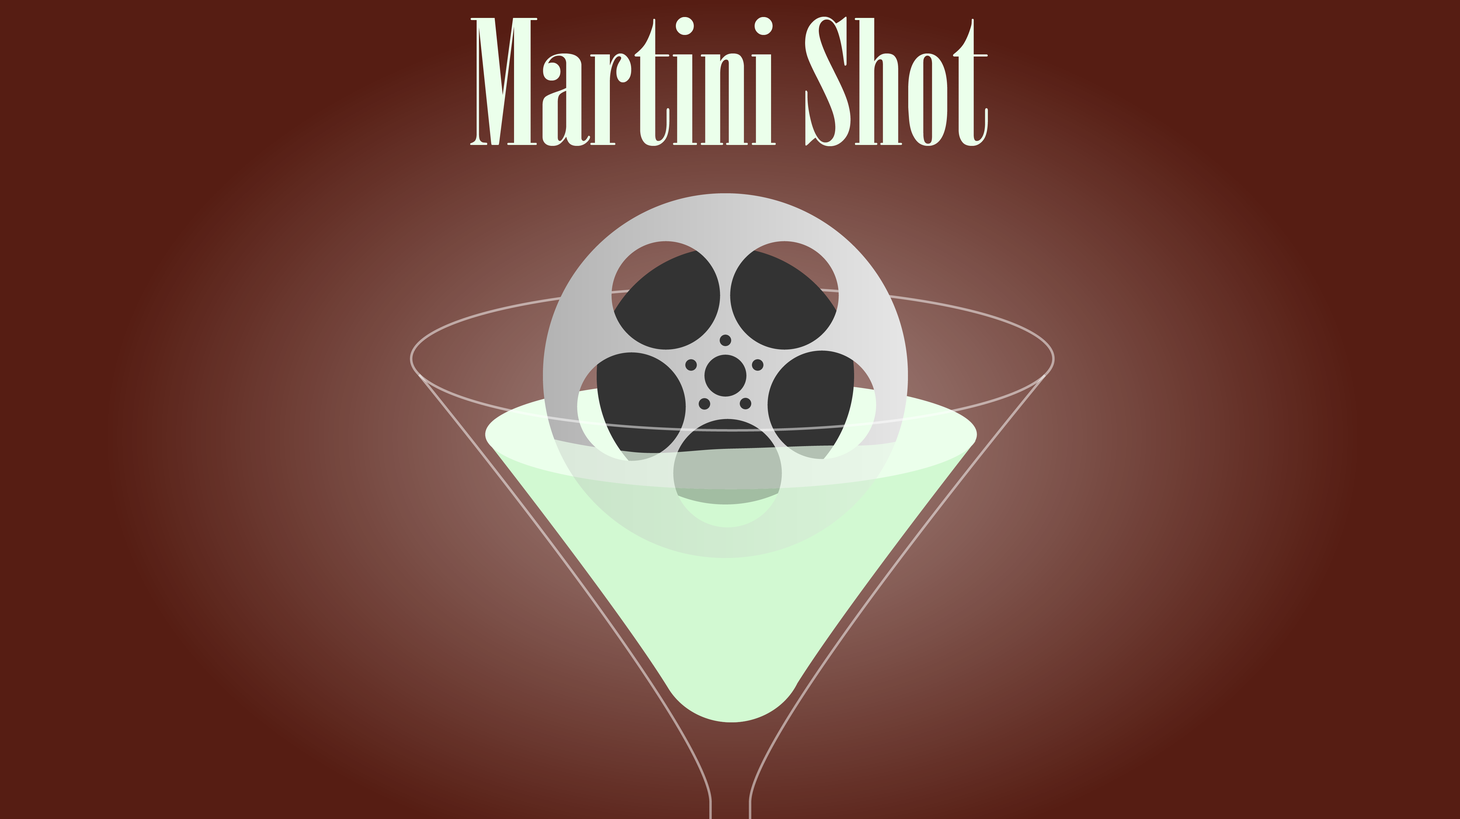 This is Rob Long and on today's Martini Shot I talk about what it must be like to be down a well and to look up and see the stars, and why a place I know in Hollywood is trying to do something like that for homeless youth.